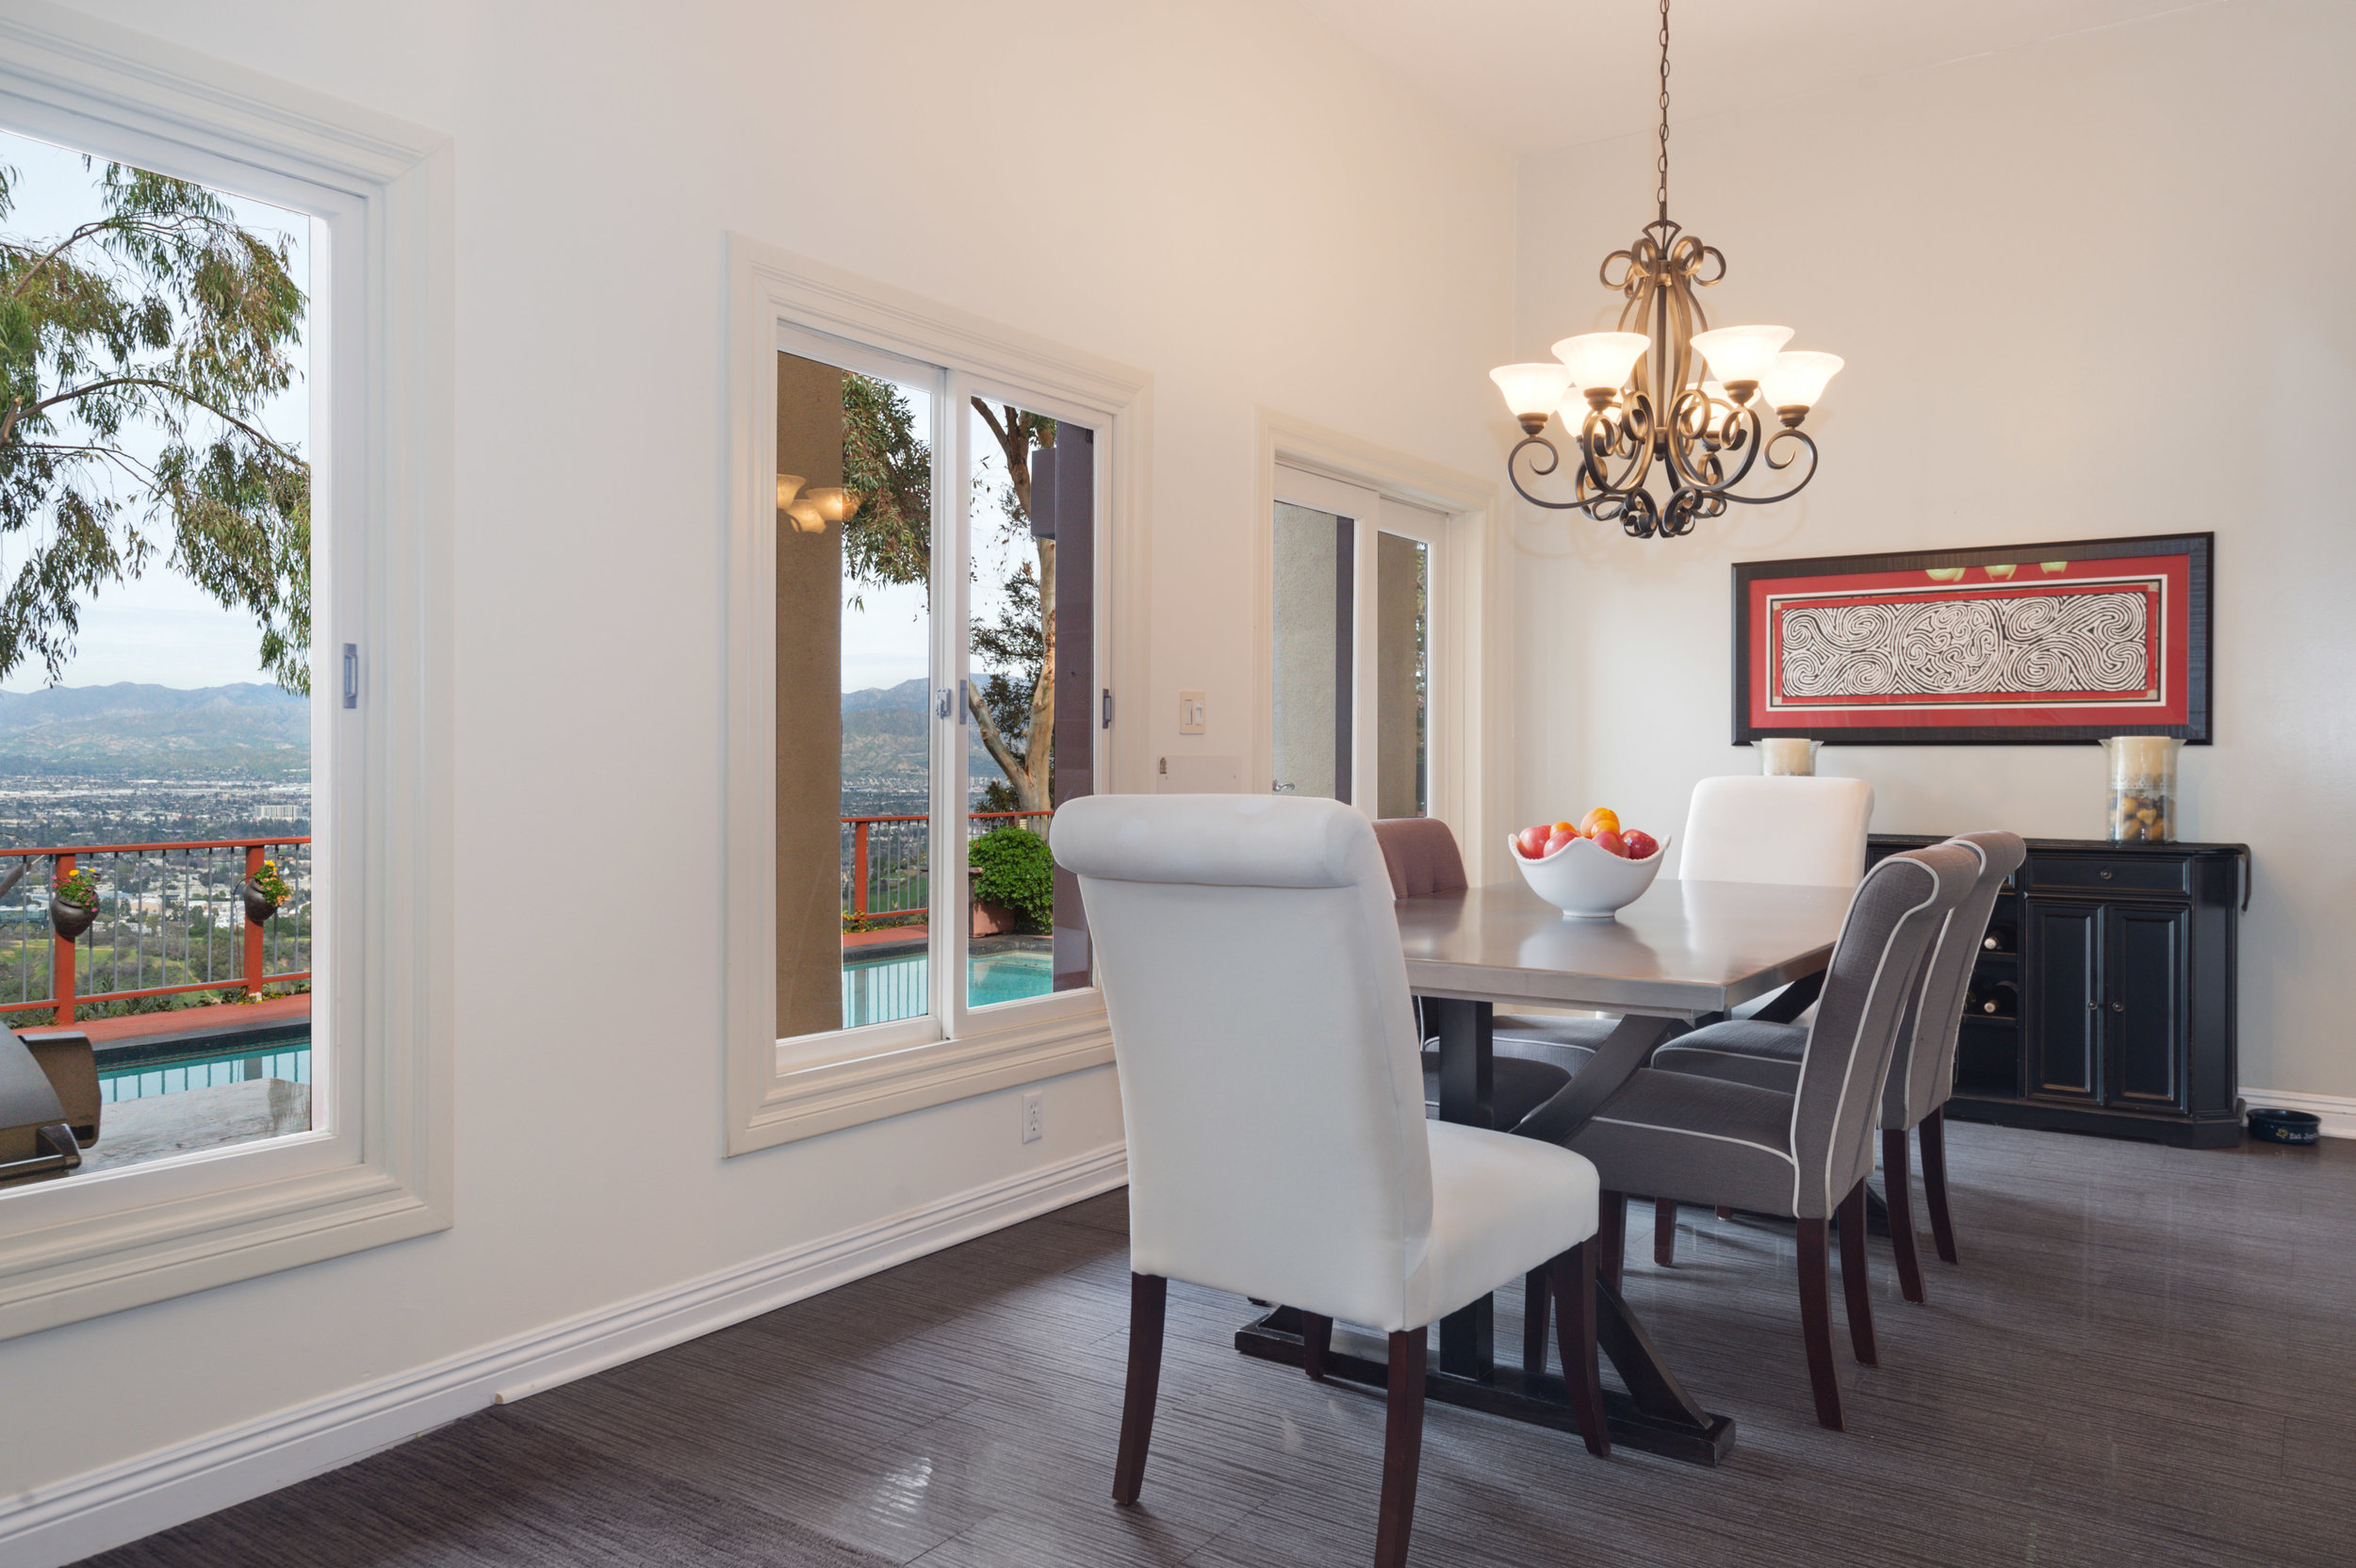 008 Kichen 12027 Talus Place Beverly Hills 90210 For Sale Lease The Malibu Life Team Luxury Real Estate.jpg